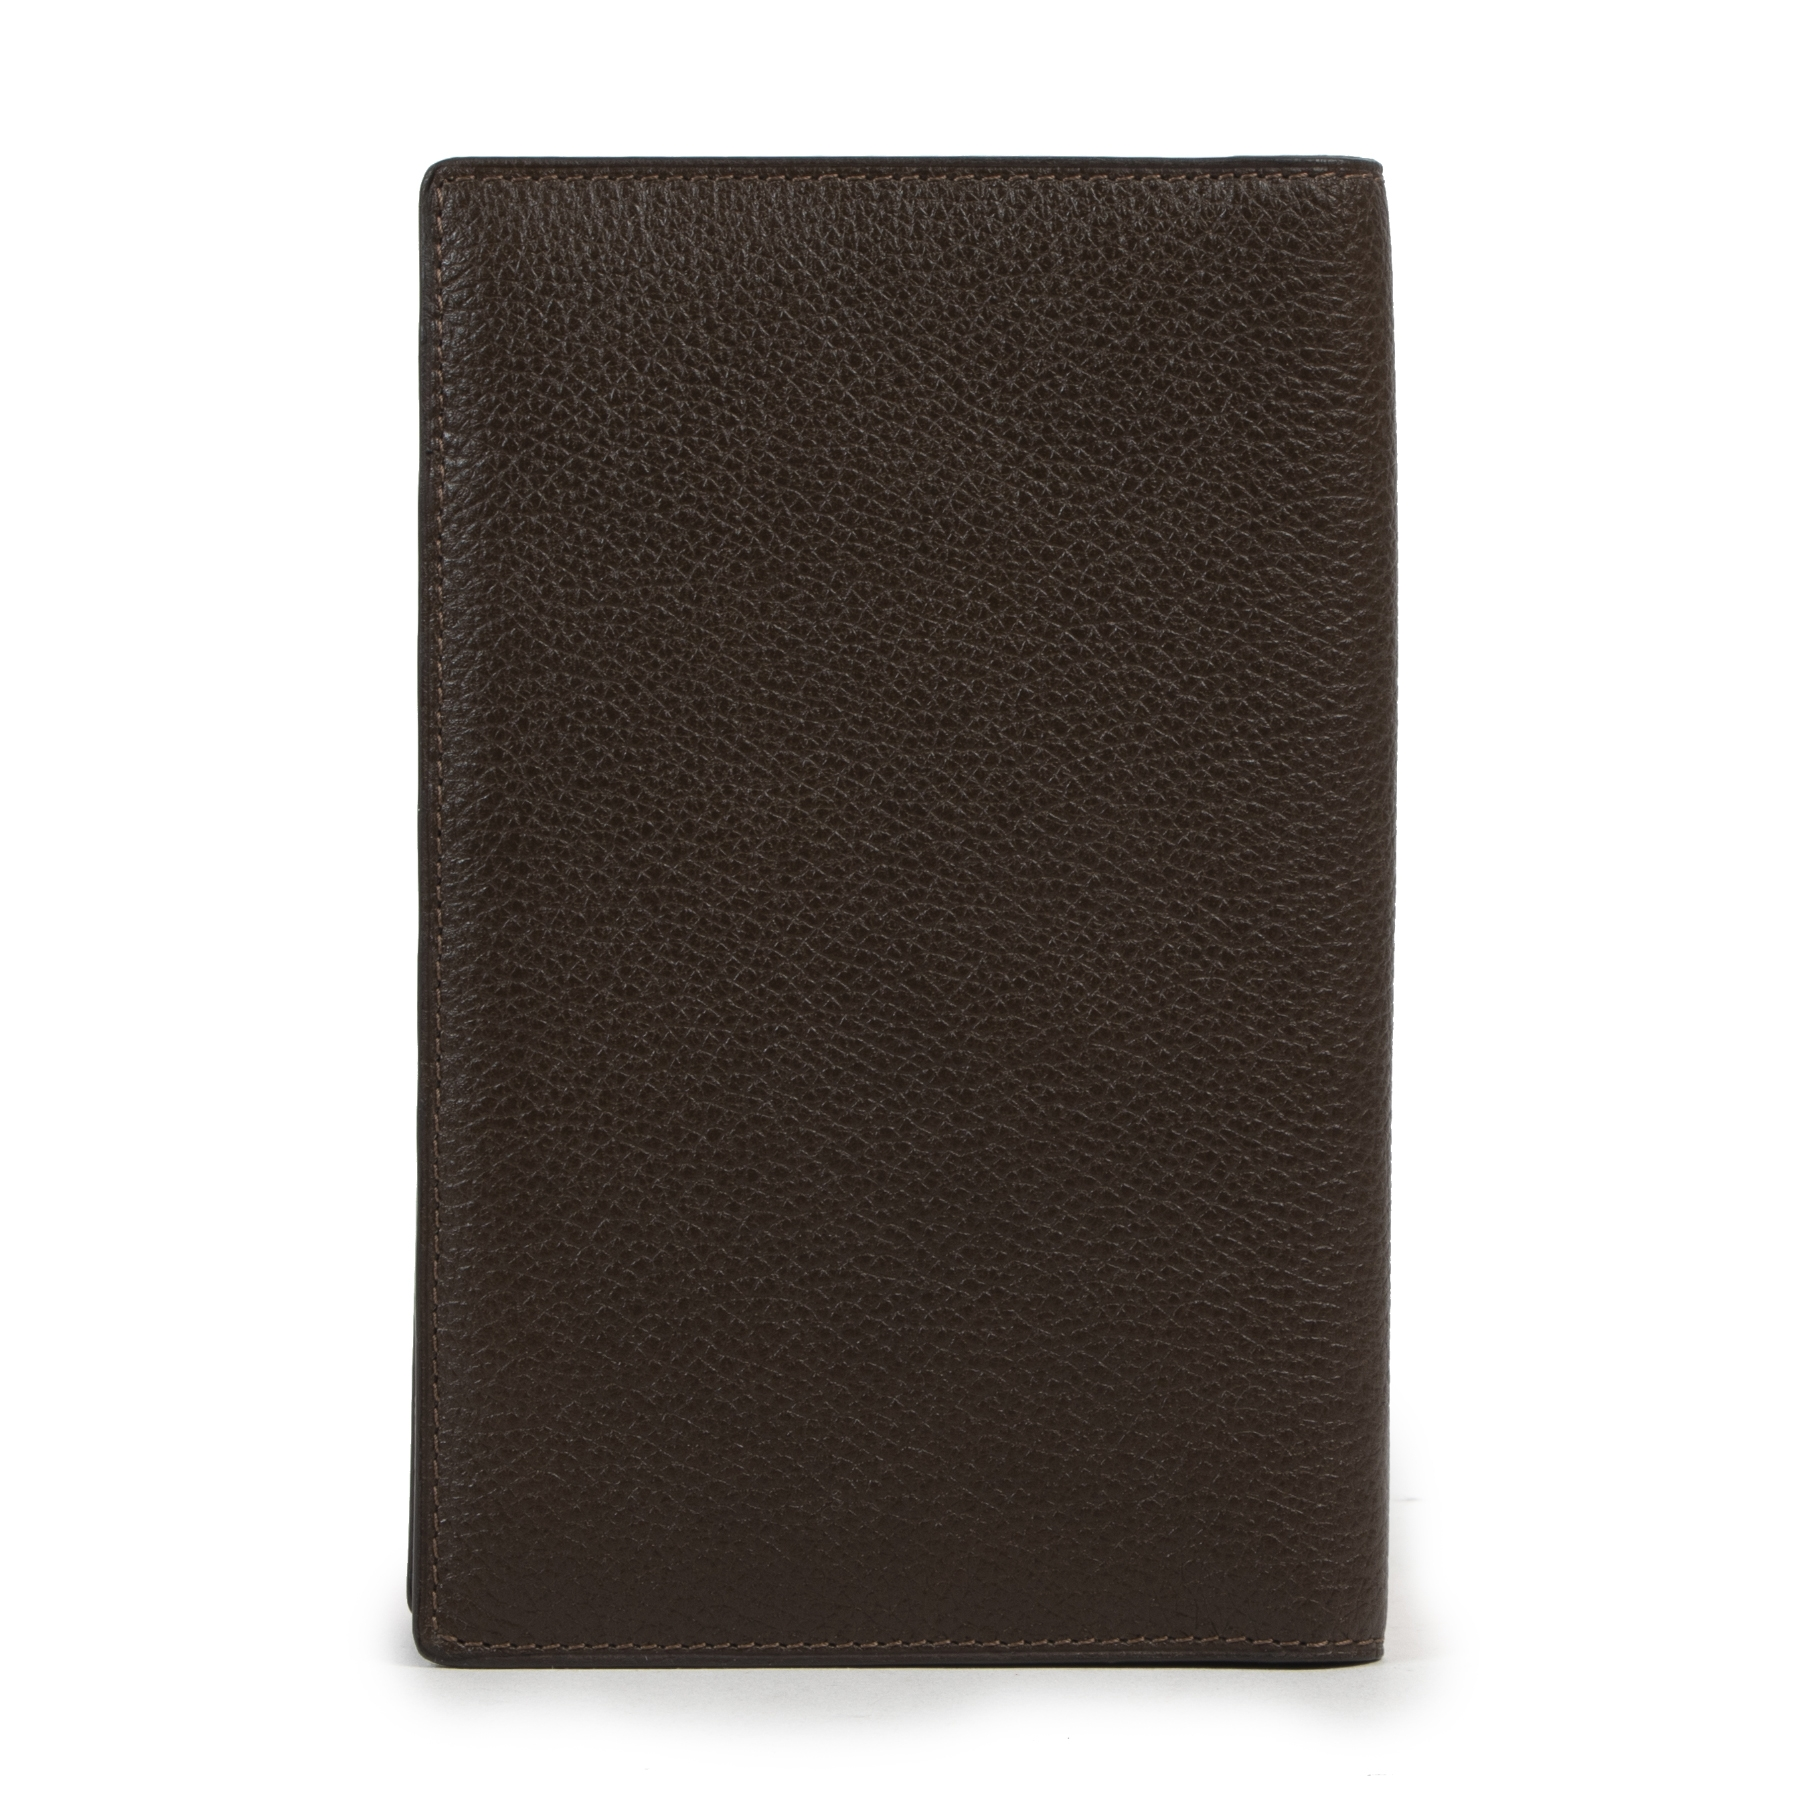 acheter en lingne seconde main Delvaux Brown Casino Jumping Grained Leather Wallet